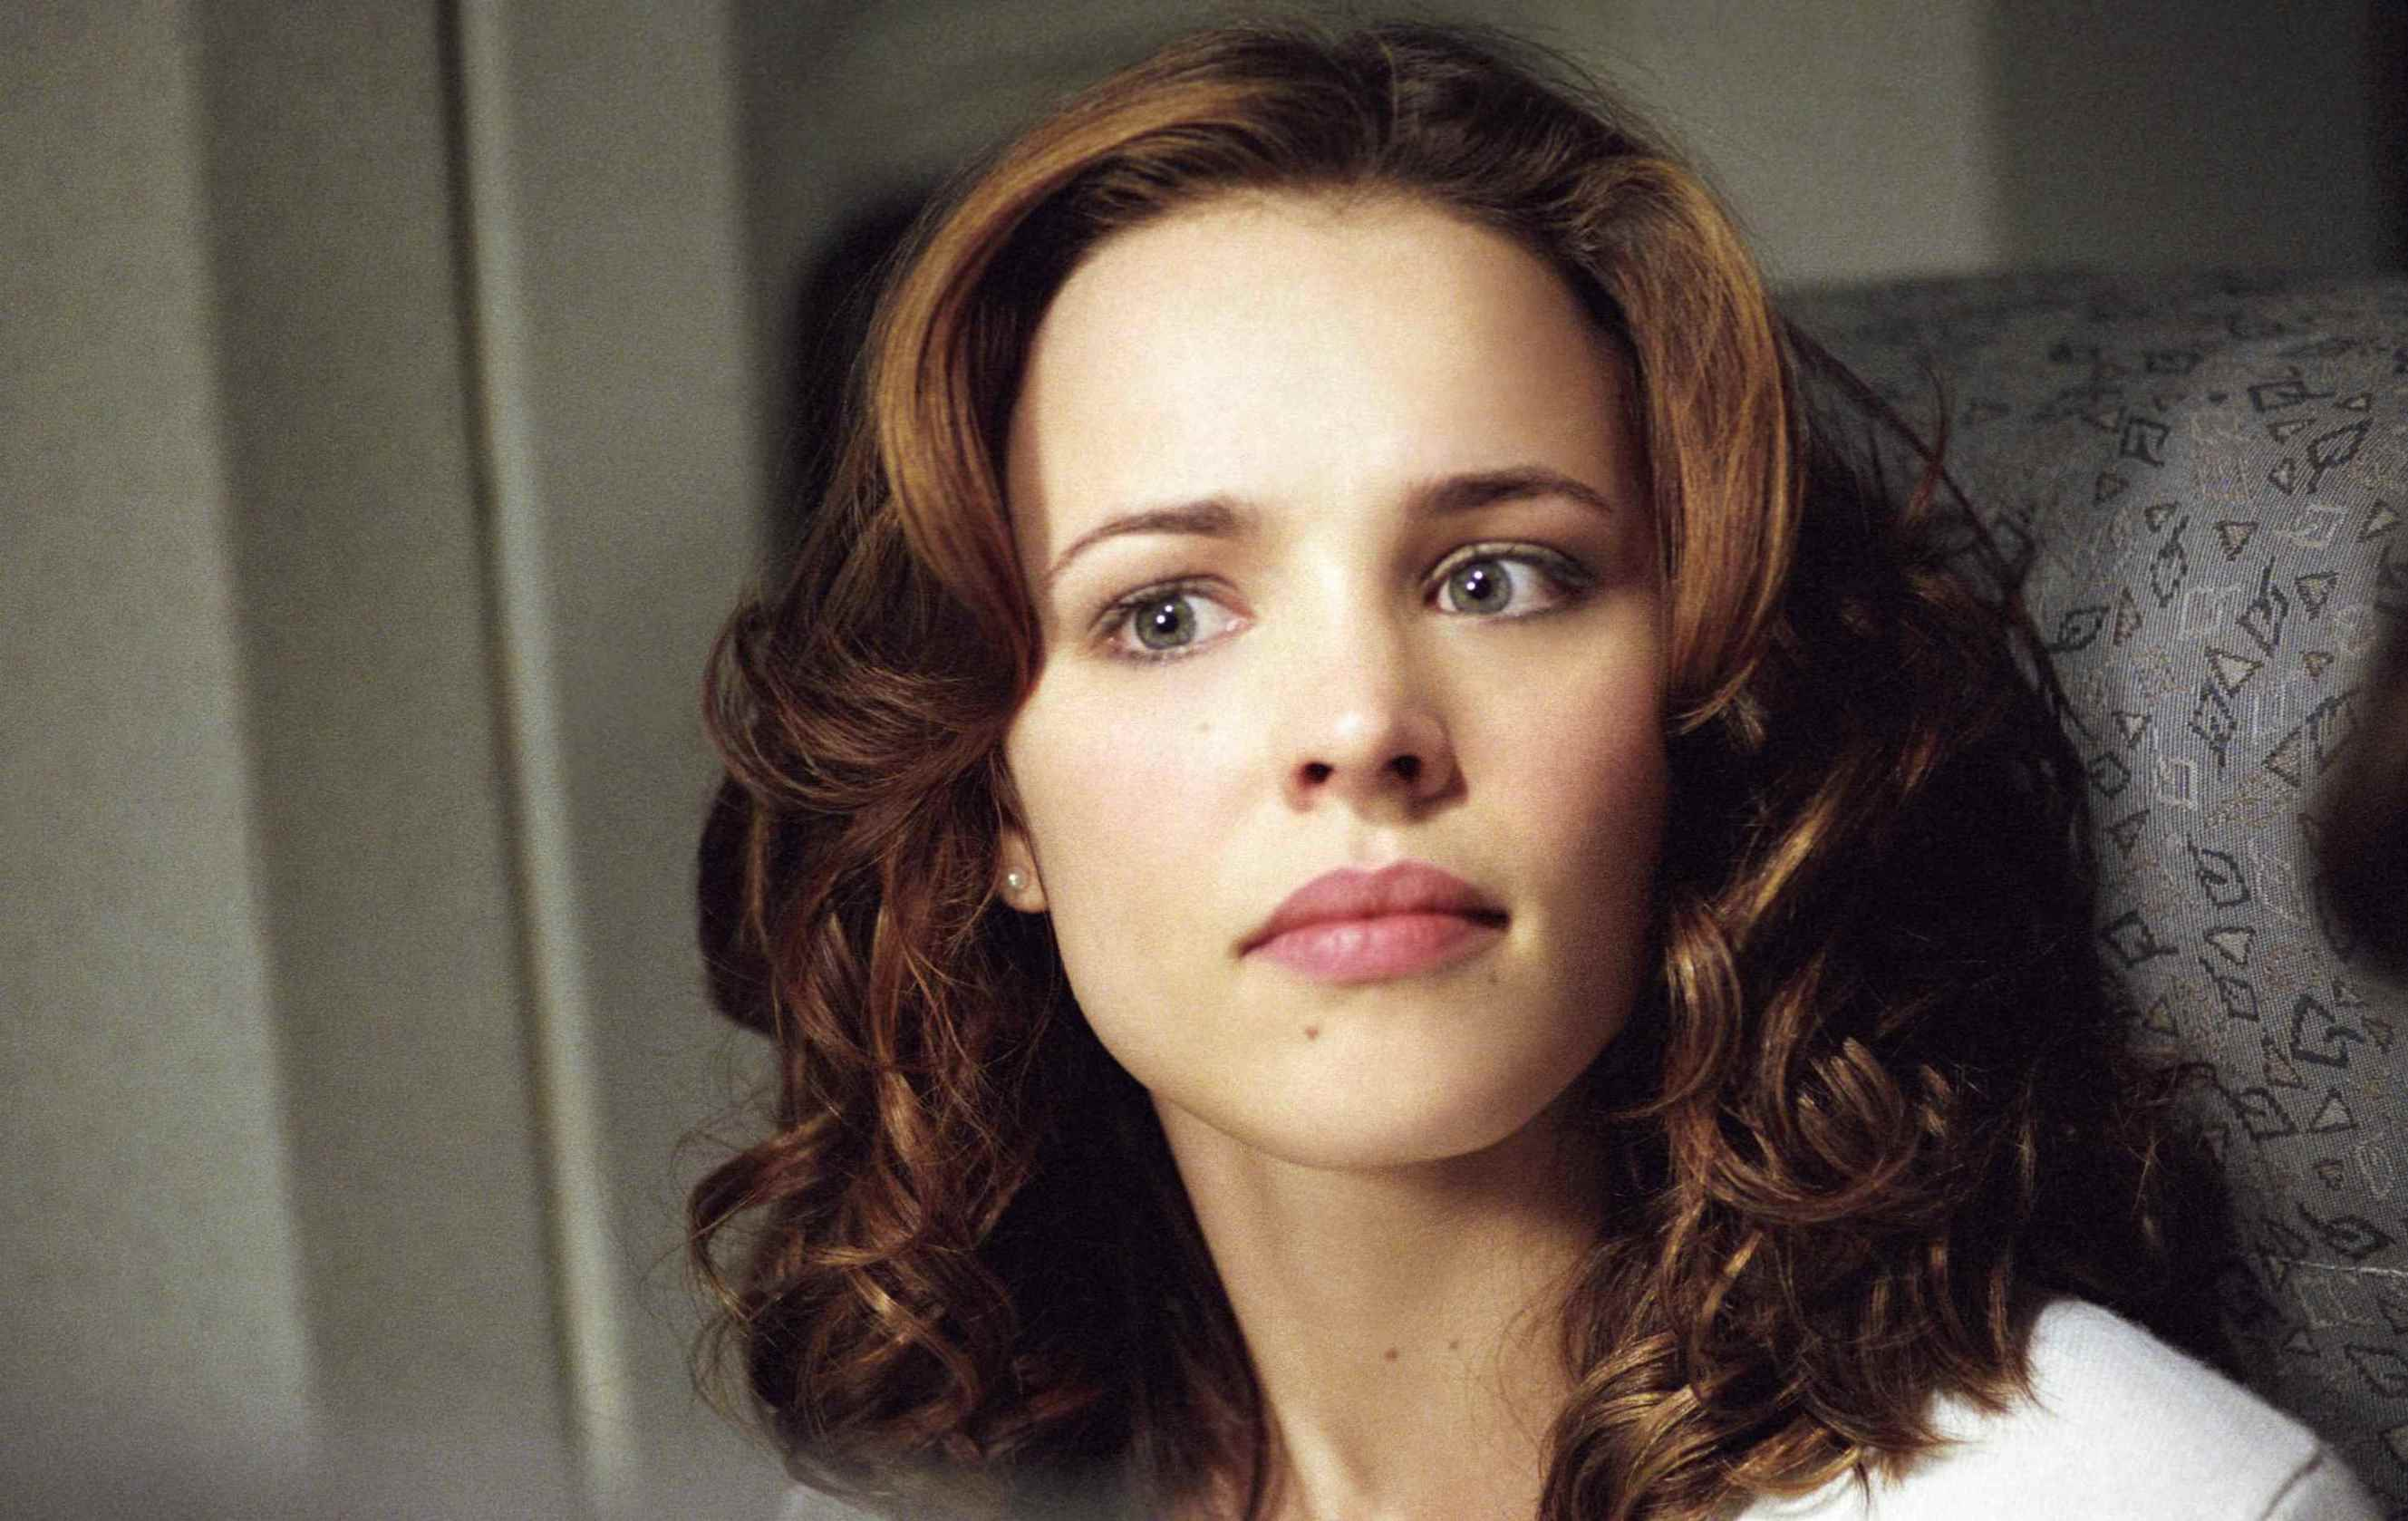 Rachel McAdams as Lisa Reisert in Red Eye.